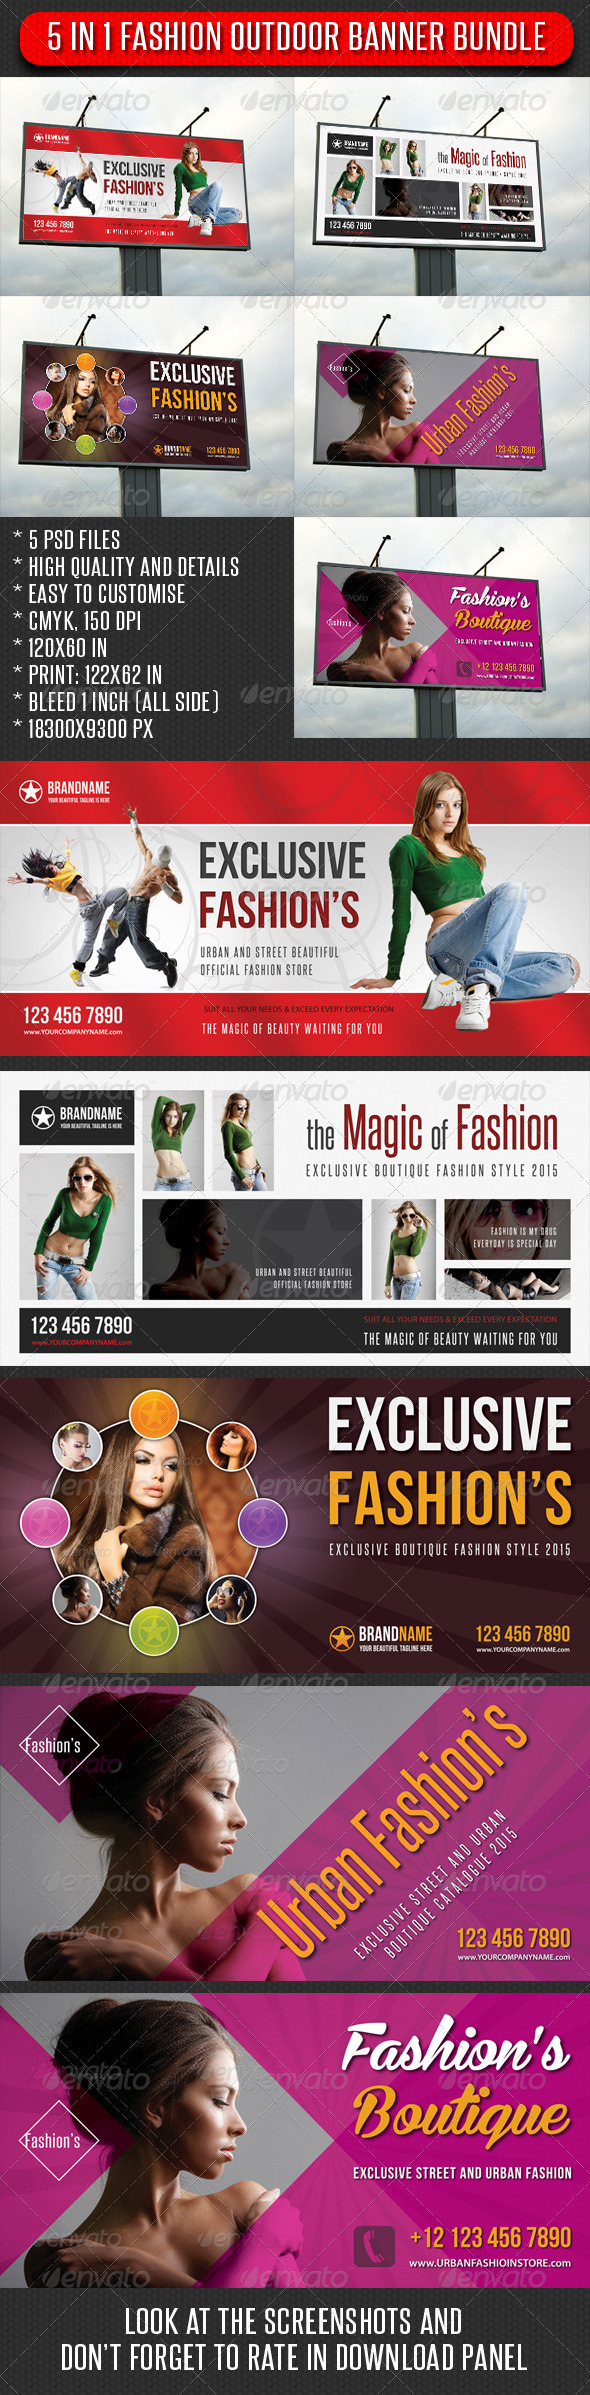 5 in 1 Fashion Outdoor Banner Bundle 04